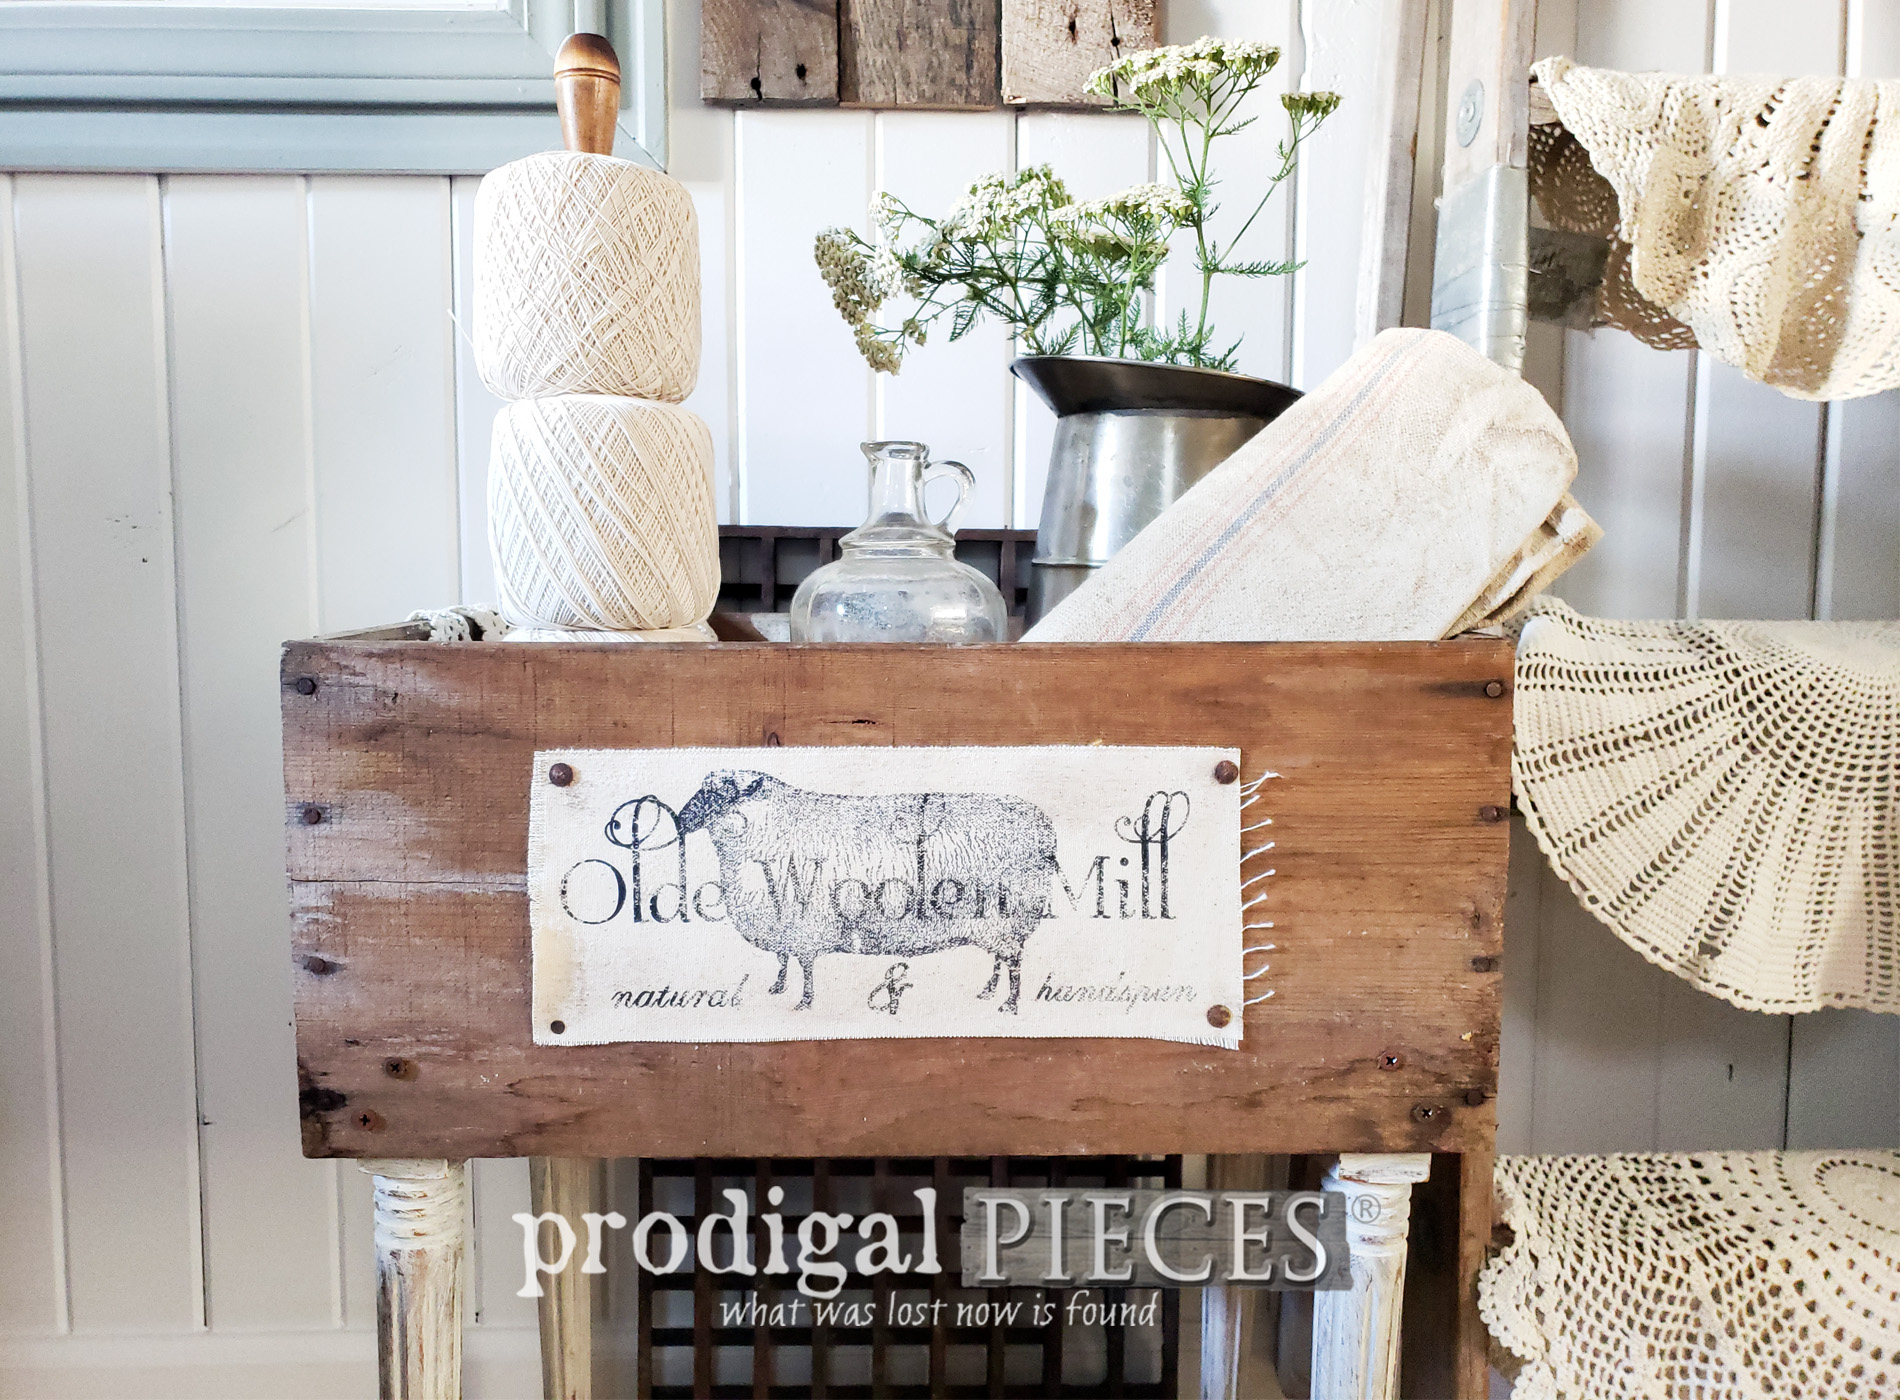 Featured Upcycled Crates for DIY Farmhouse Decor by Larissa of Prodigal Pieces | prodigalpieces.com #prodigalpieces #diy #farmhouse #home #homedecor #diy